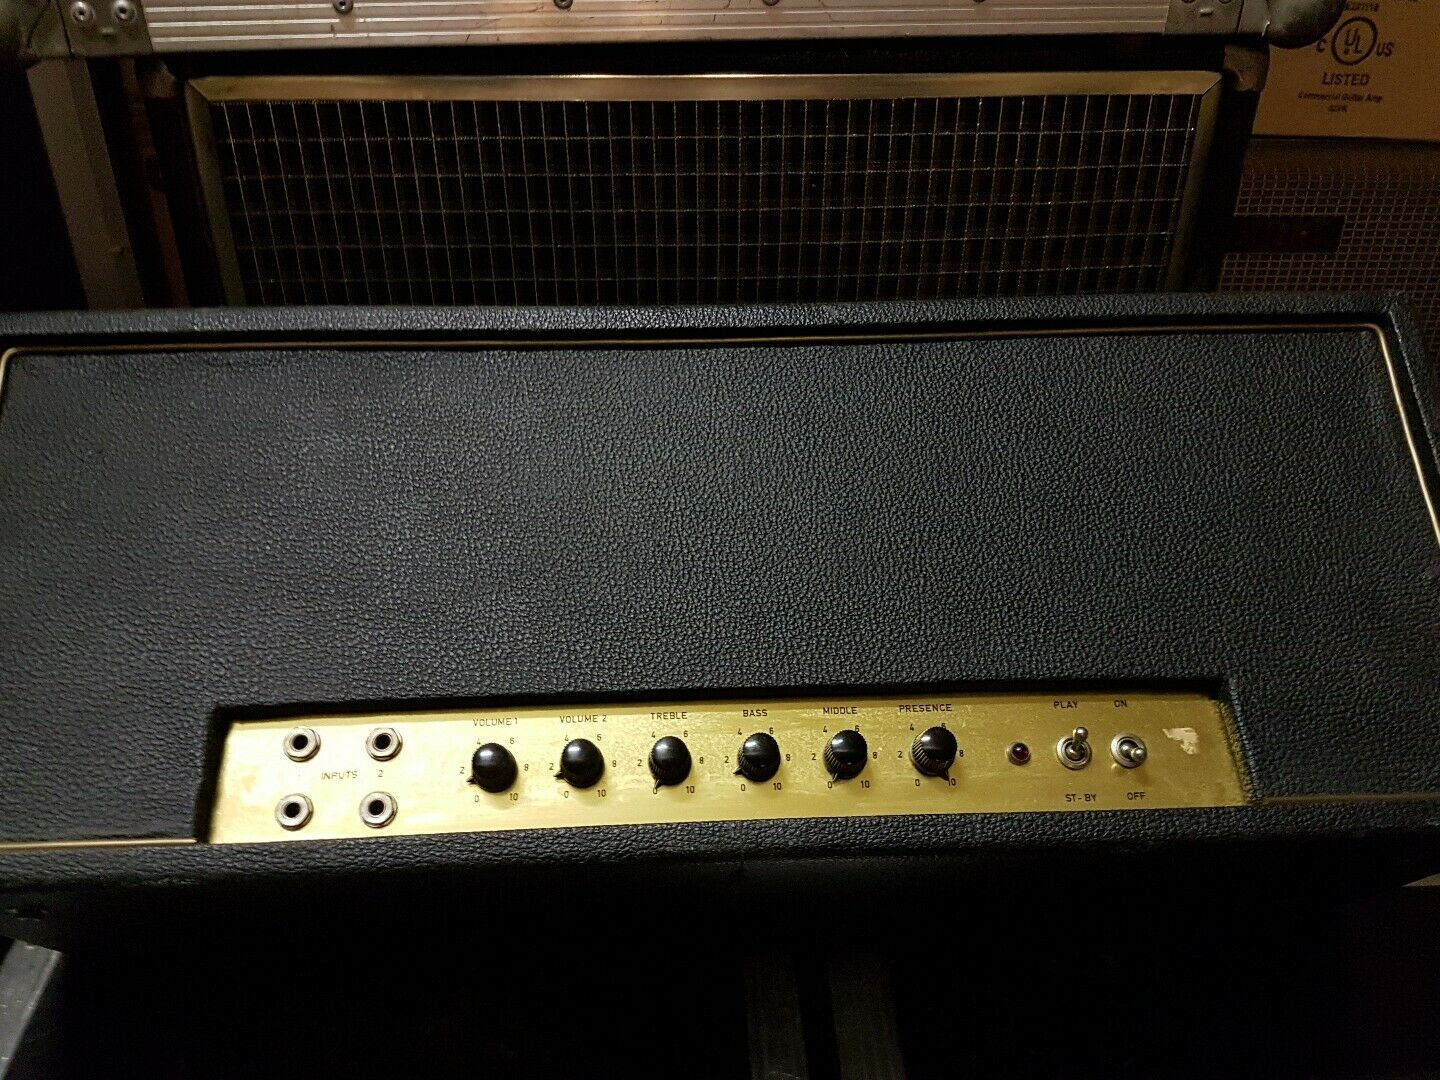 70's MAQUIS 100 W TUBE AMP - made in GERMANY